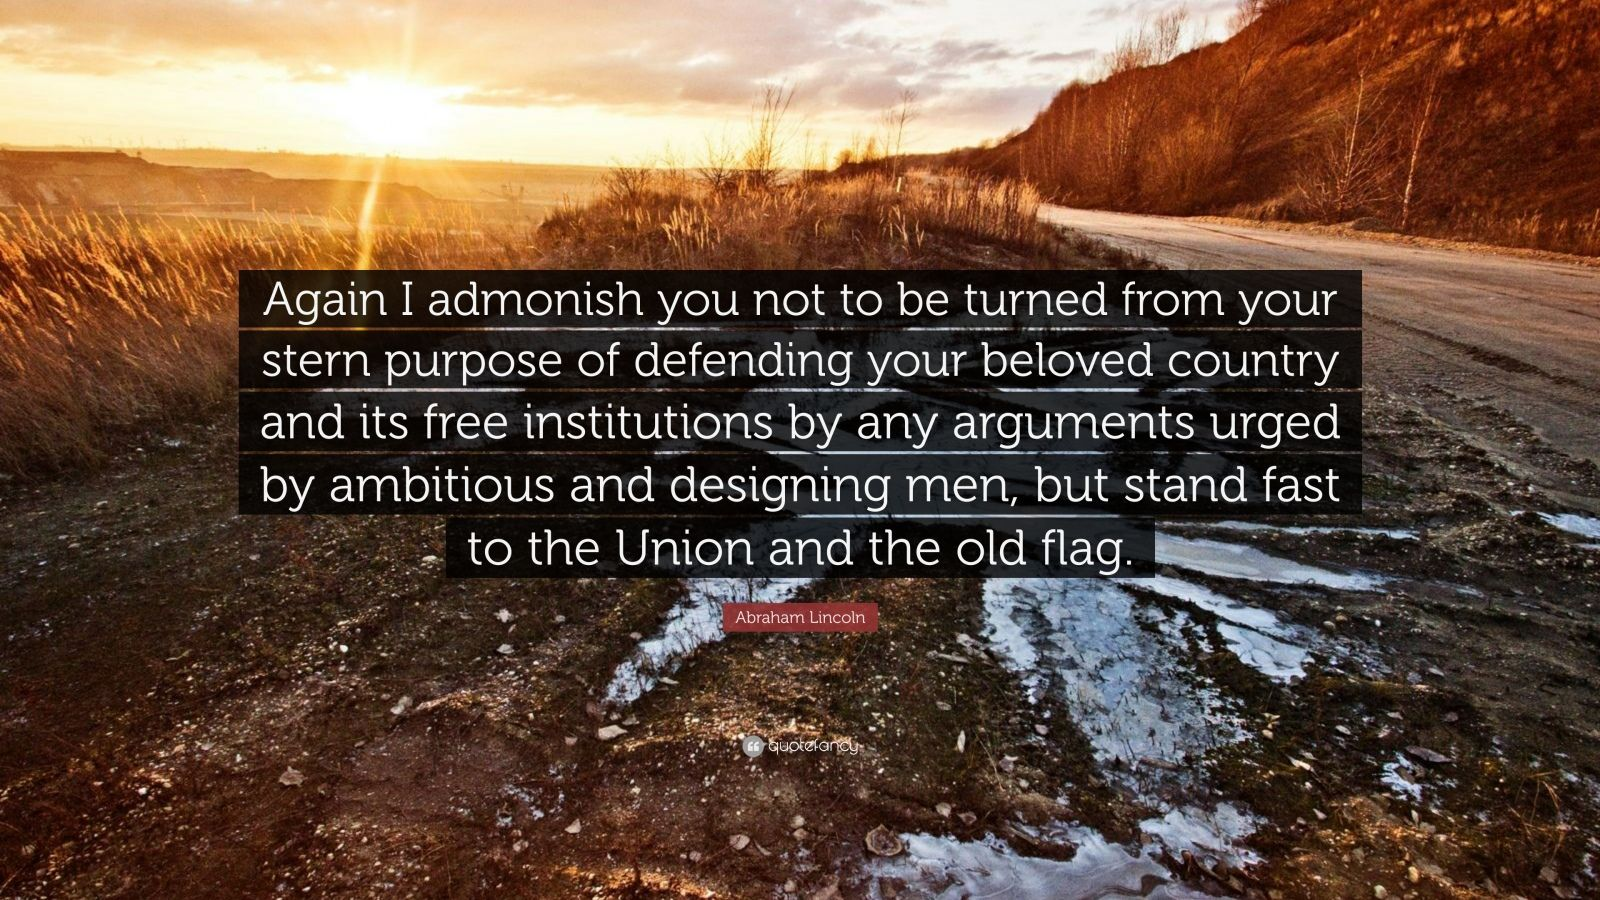 """Abraham Lincoln Quote: """"Again I admonish you not to be turned from your stern purpose of defending your beloved country and its free institutions by any arguments urged by ambitious and designing men, but stand fast to the Union and the old flag."""""""